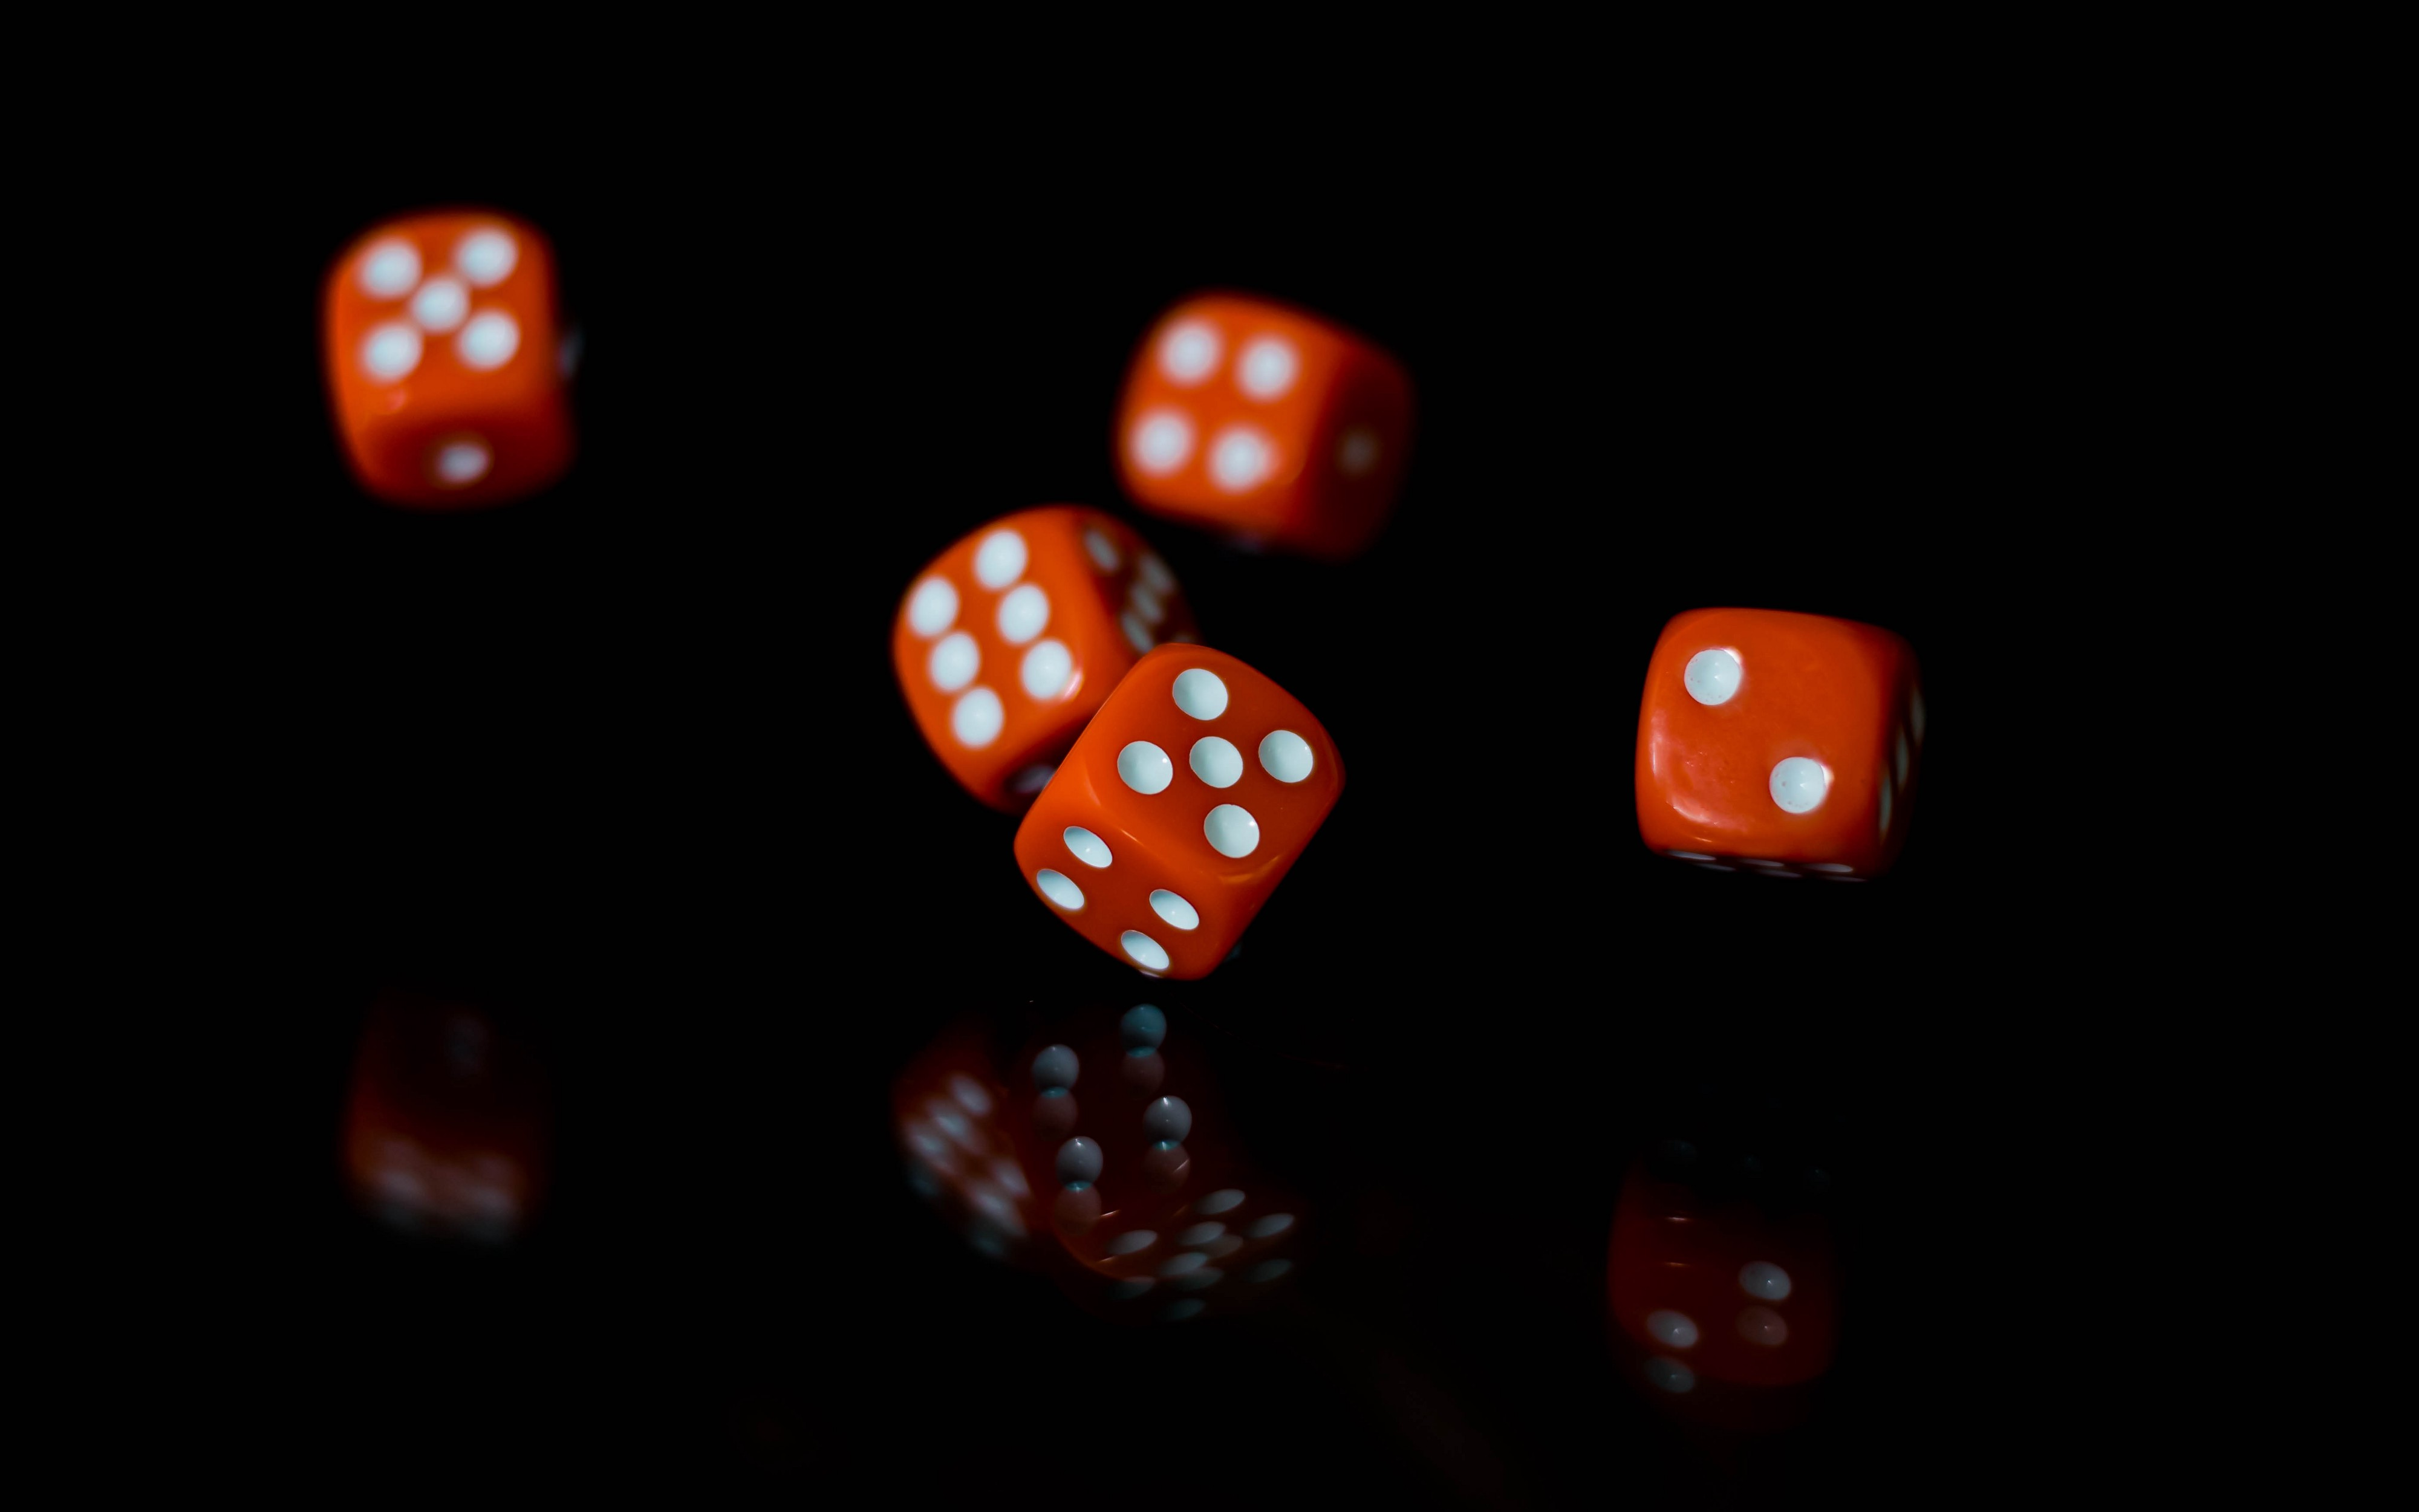 A group of dice rolling